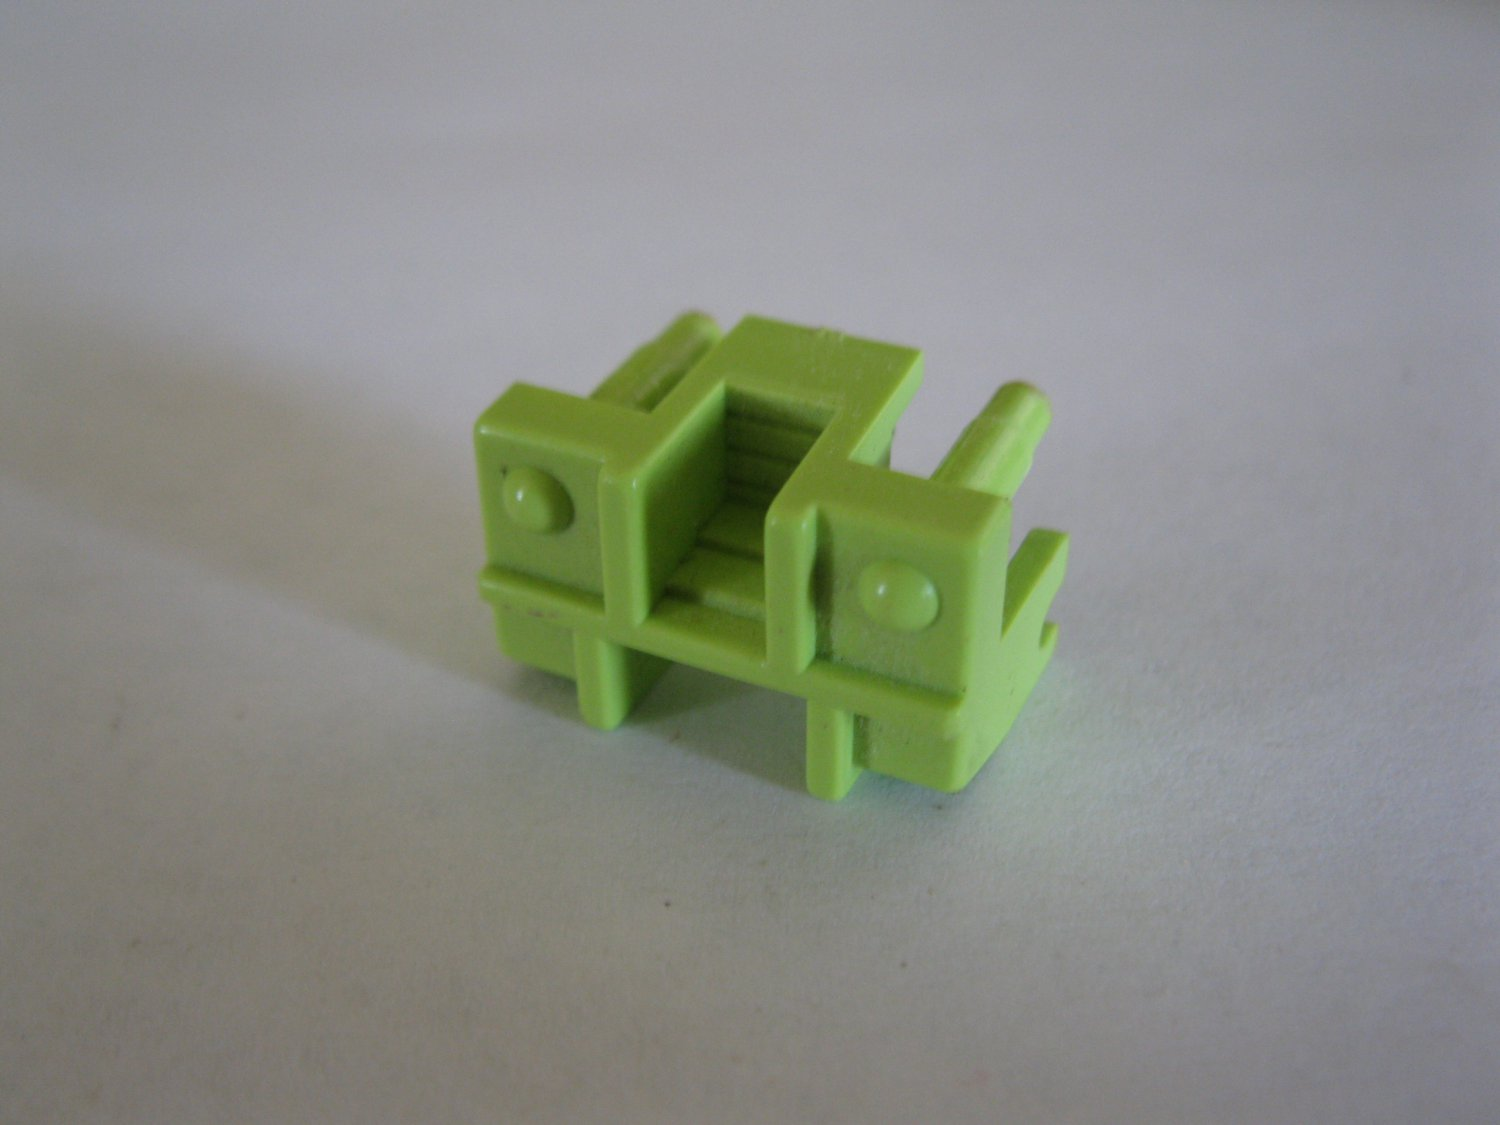 G1 Transformers Action figure part: 1984 Bonecrusher - Vehicle Seat / Neck Section